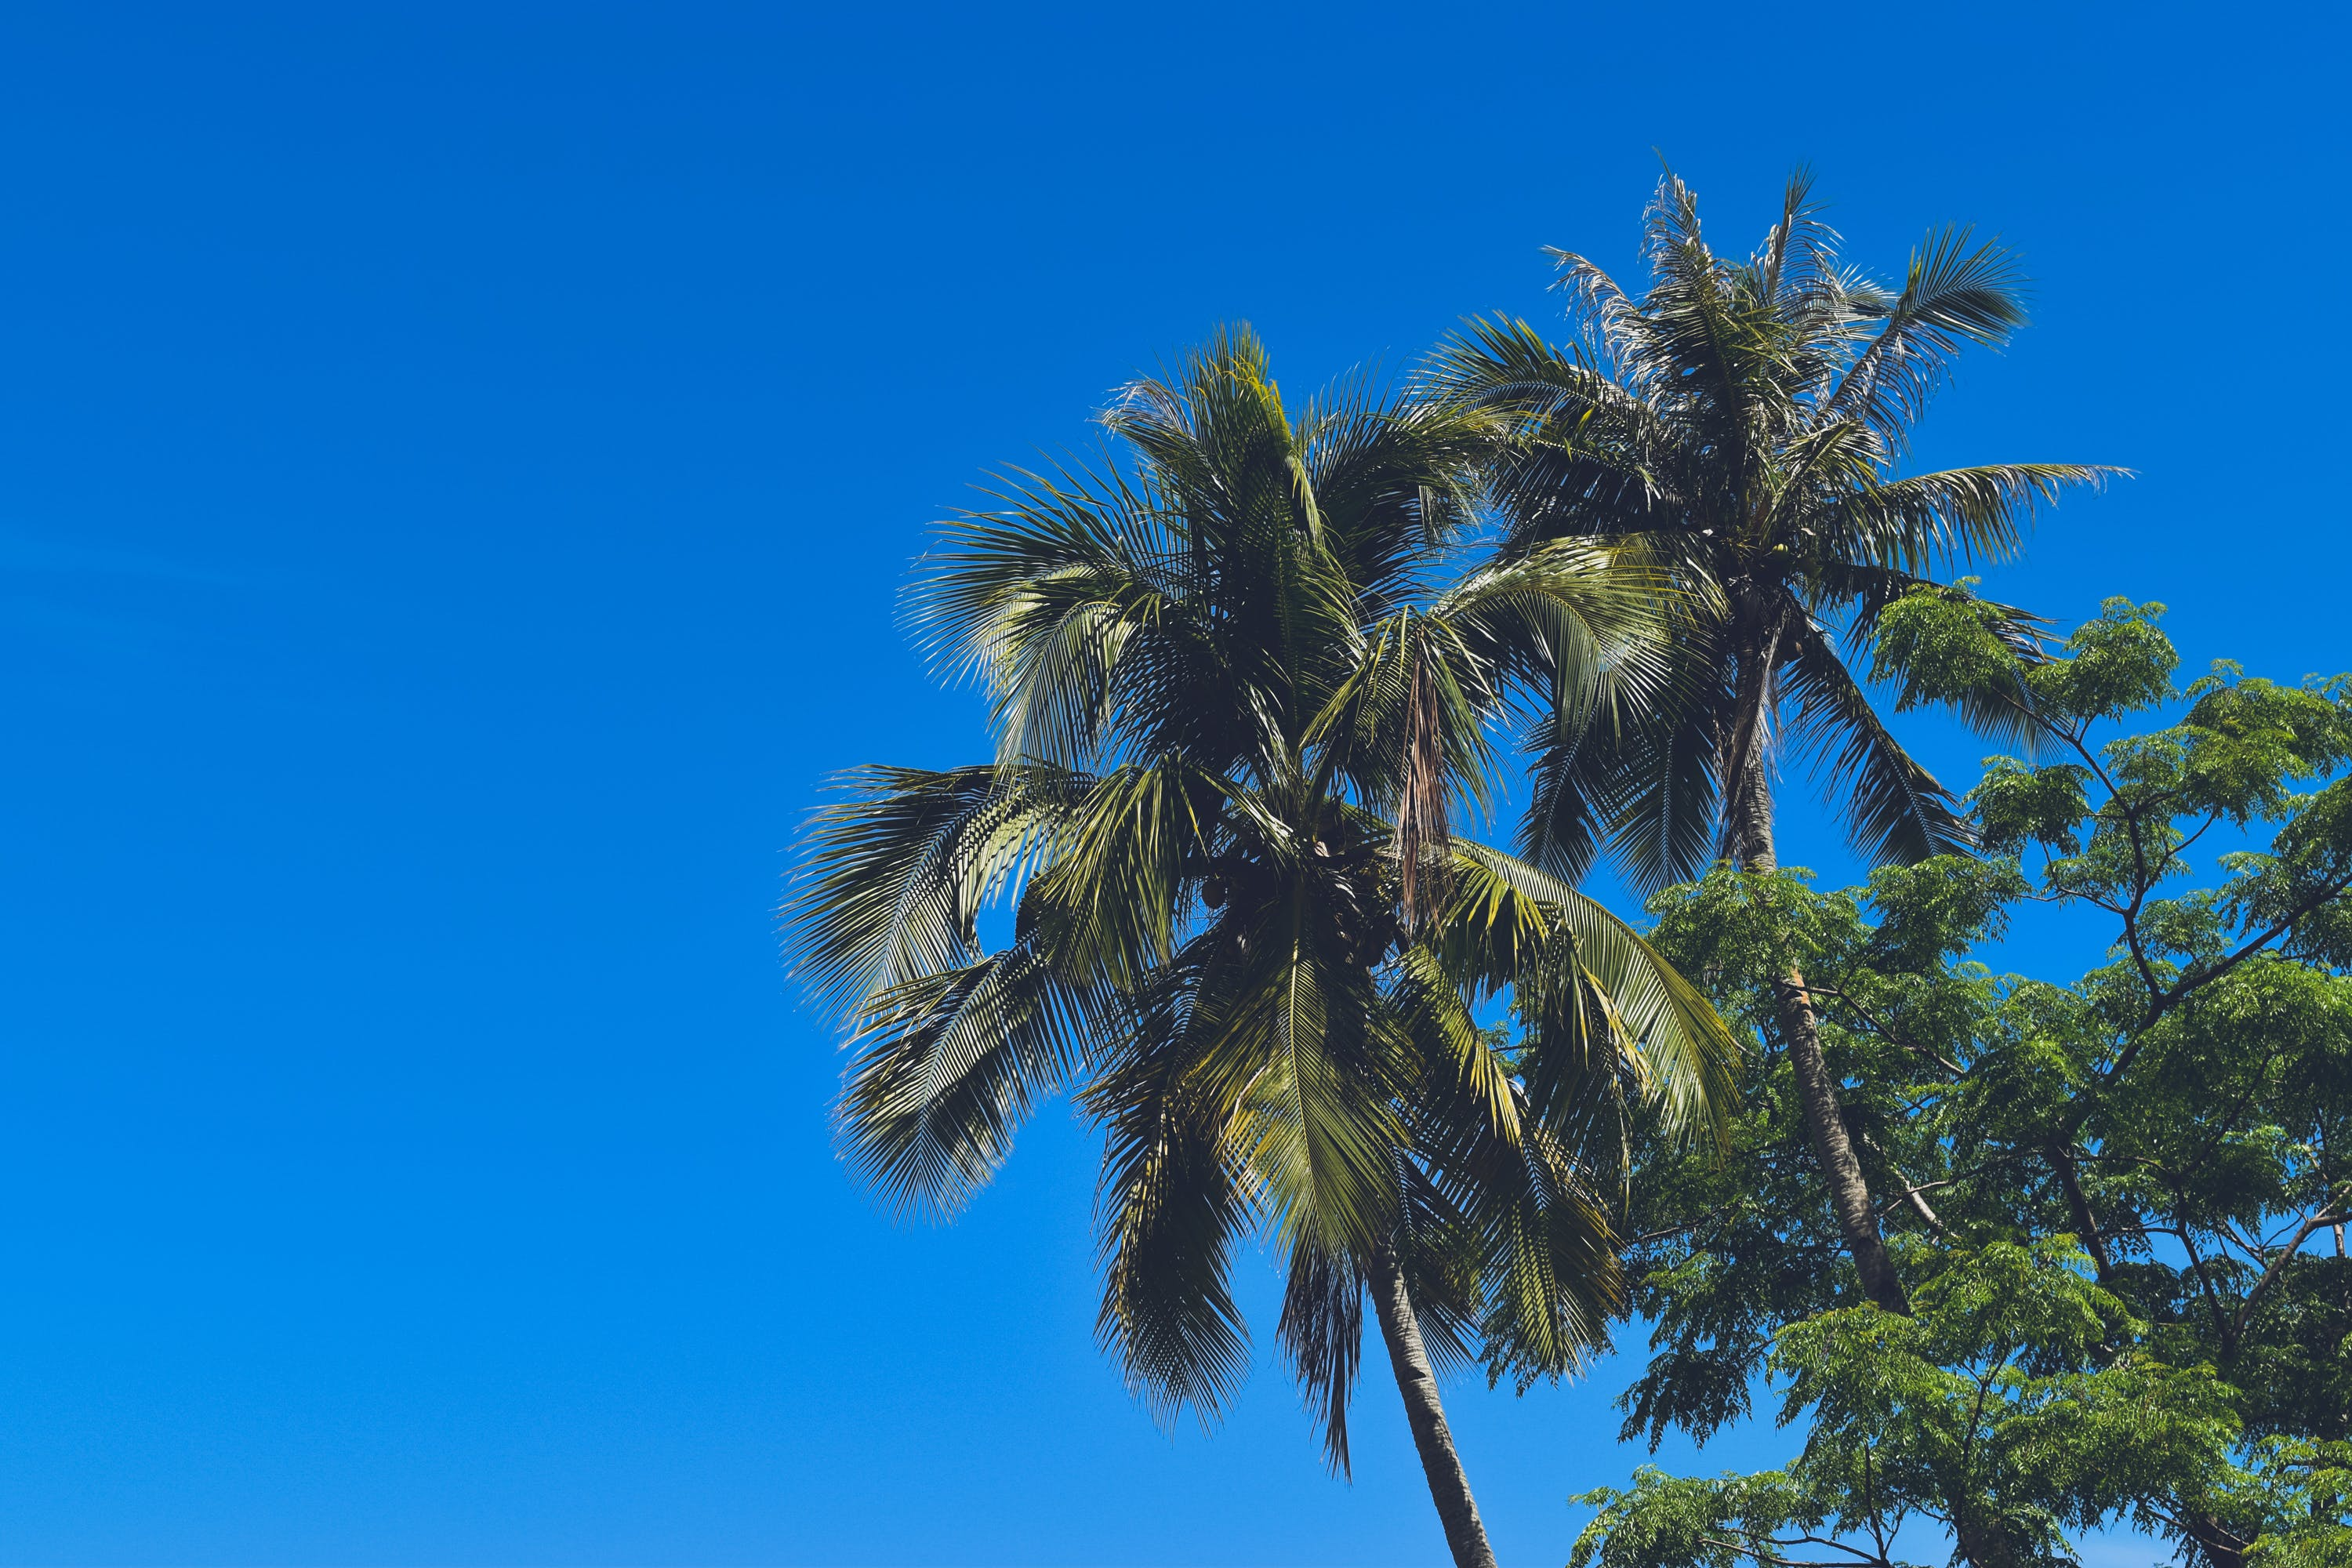 Free stock photo of coconut trees